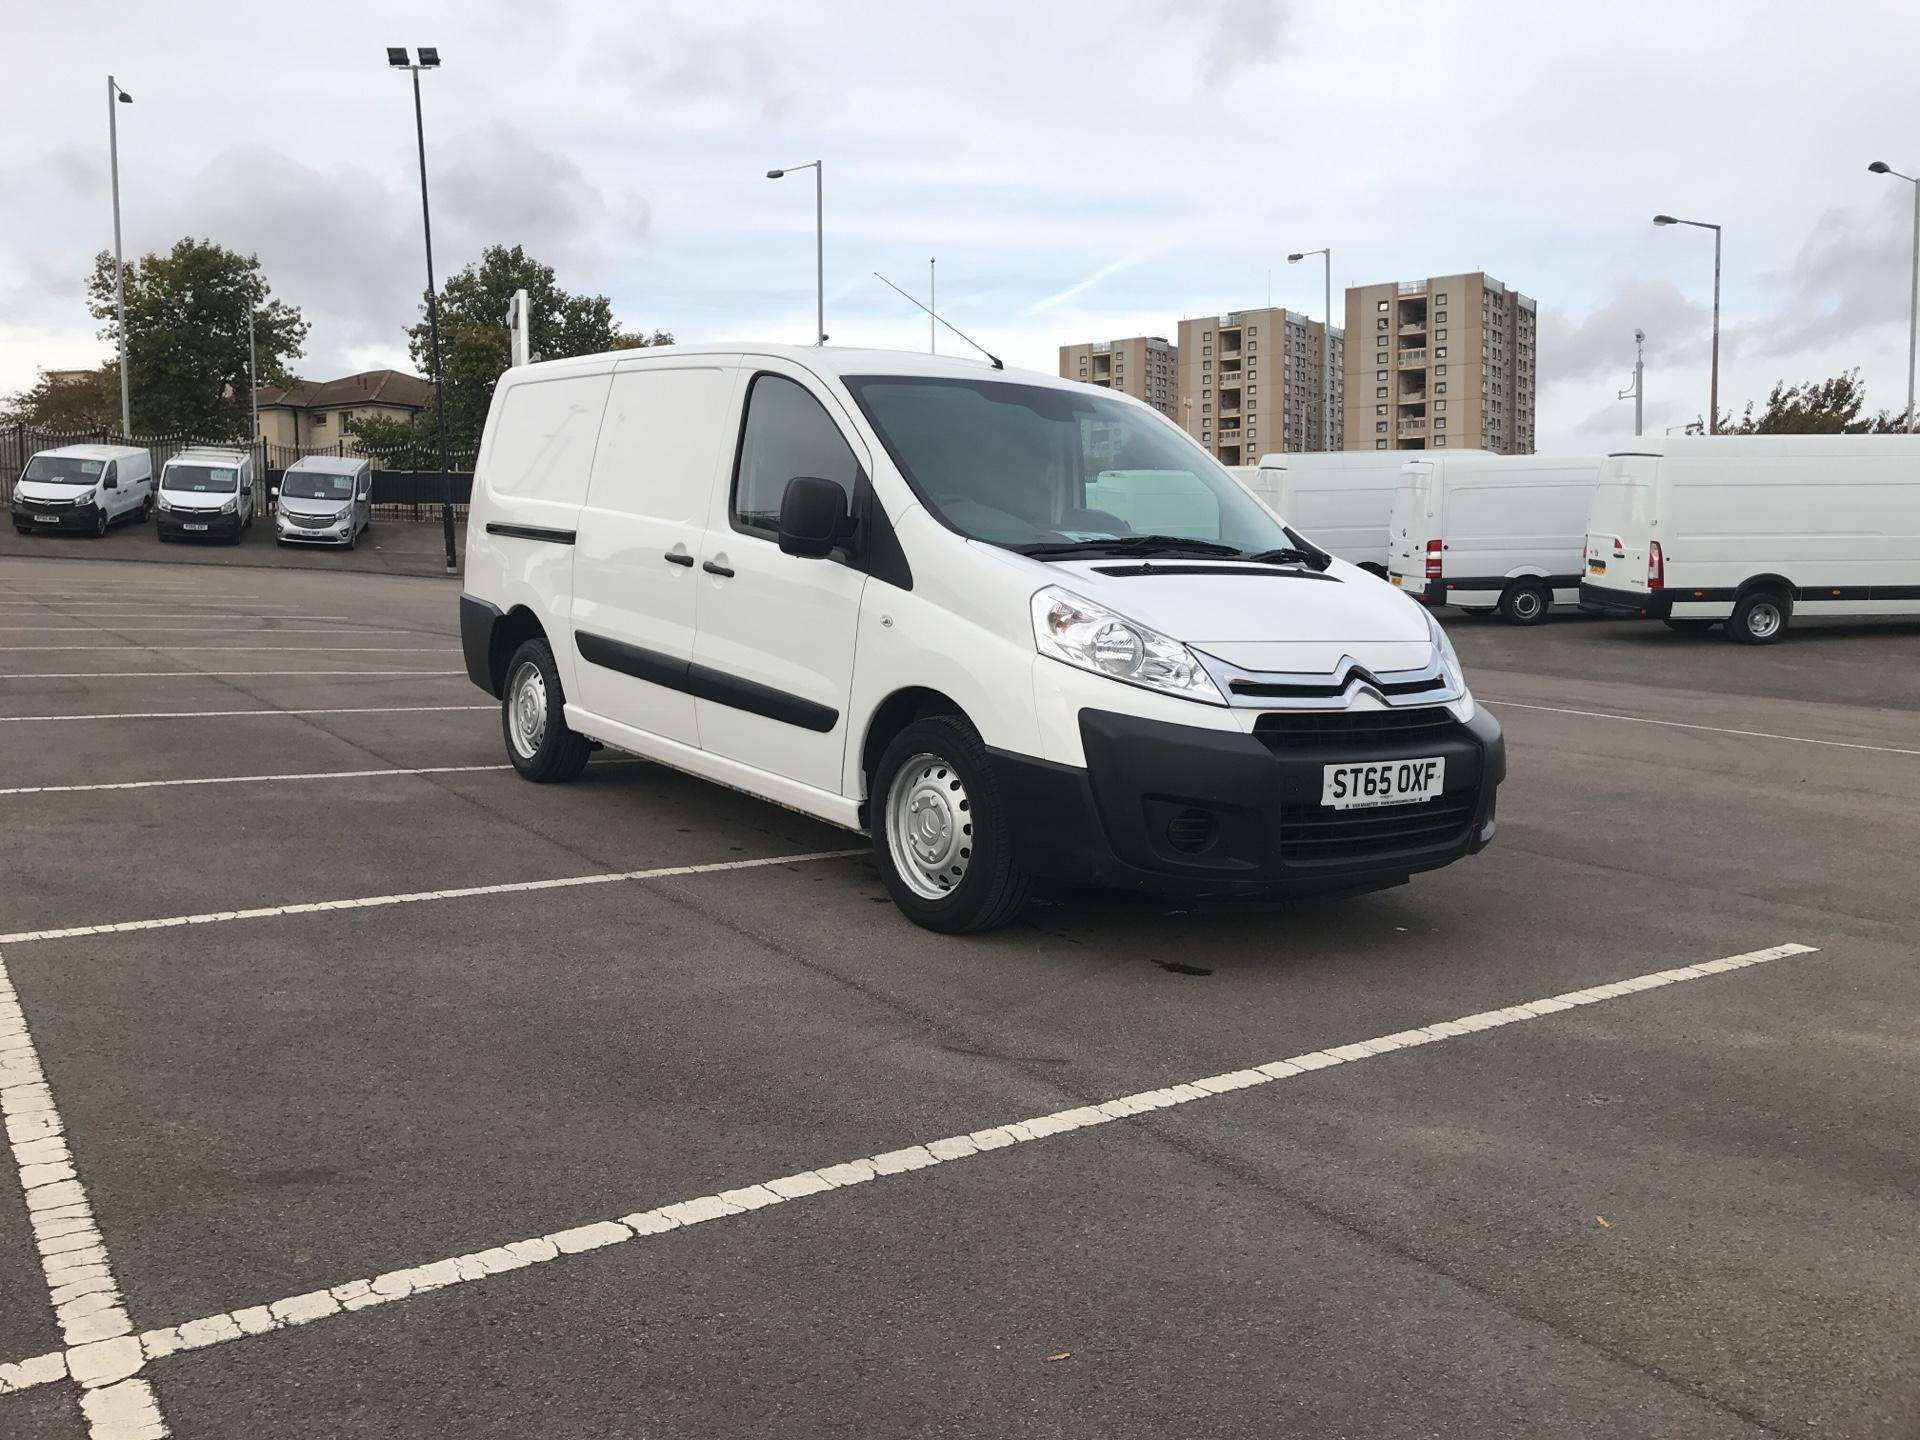 2015 Citroen Dispatch 2.0HDI L2 Enterprise Euro 5  (ST65OXF)